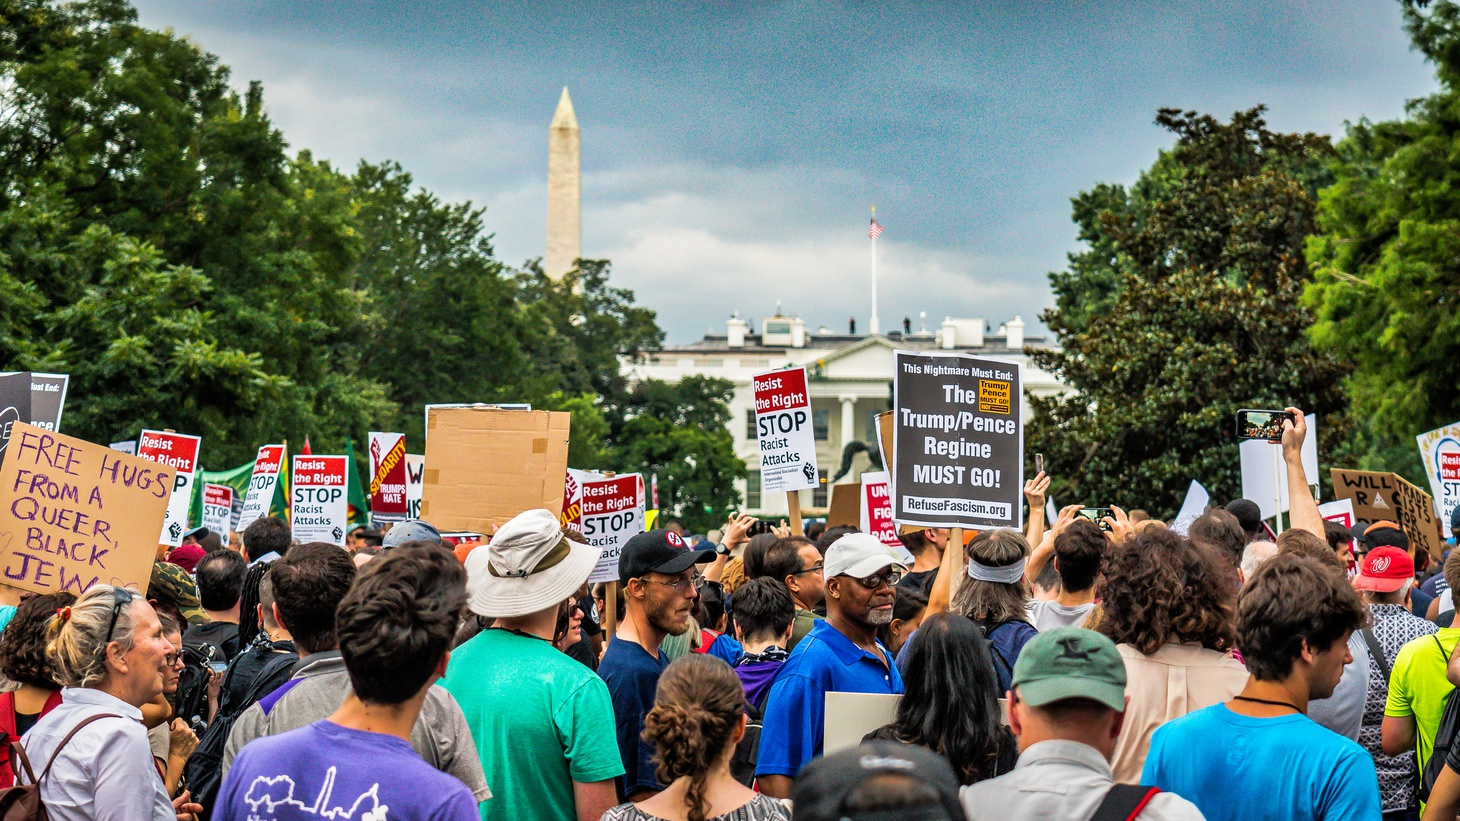 """On August 12, 2018, thousands of counter-protesters took to the parks and streets of Washington, D.C. in response to a planned """"Unite the Right 2"""" rally of white nationalists on the one year anniversary of deadly violence in Charlottesville, VA."""